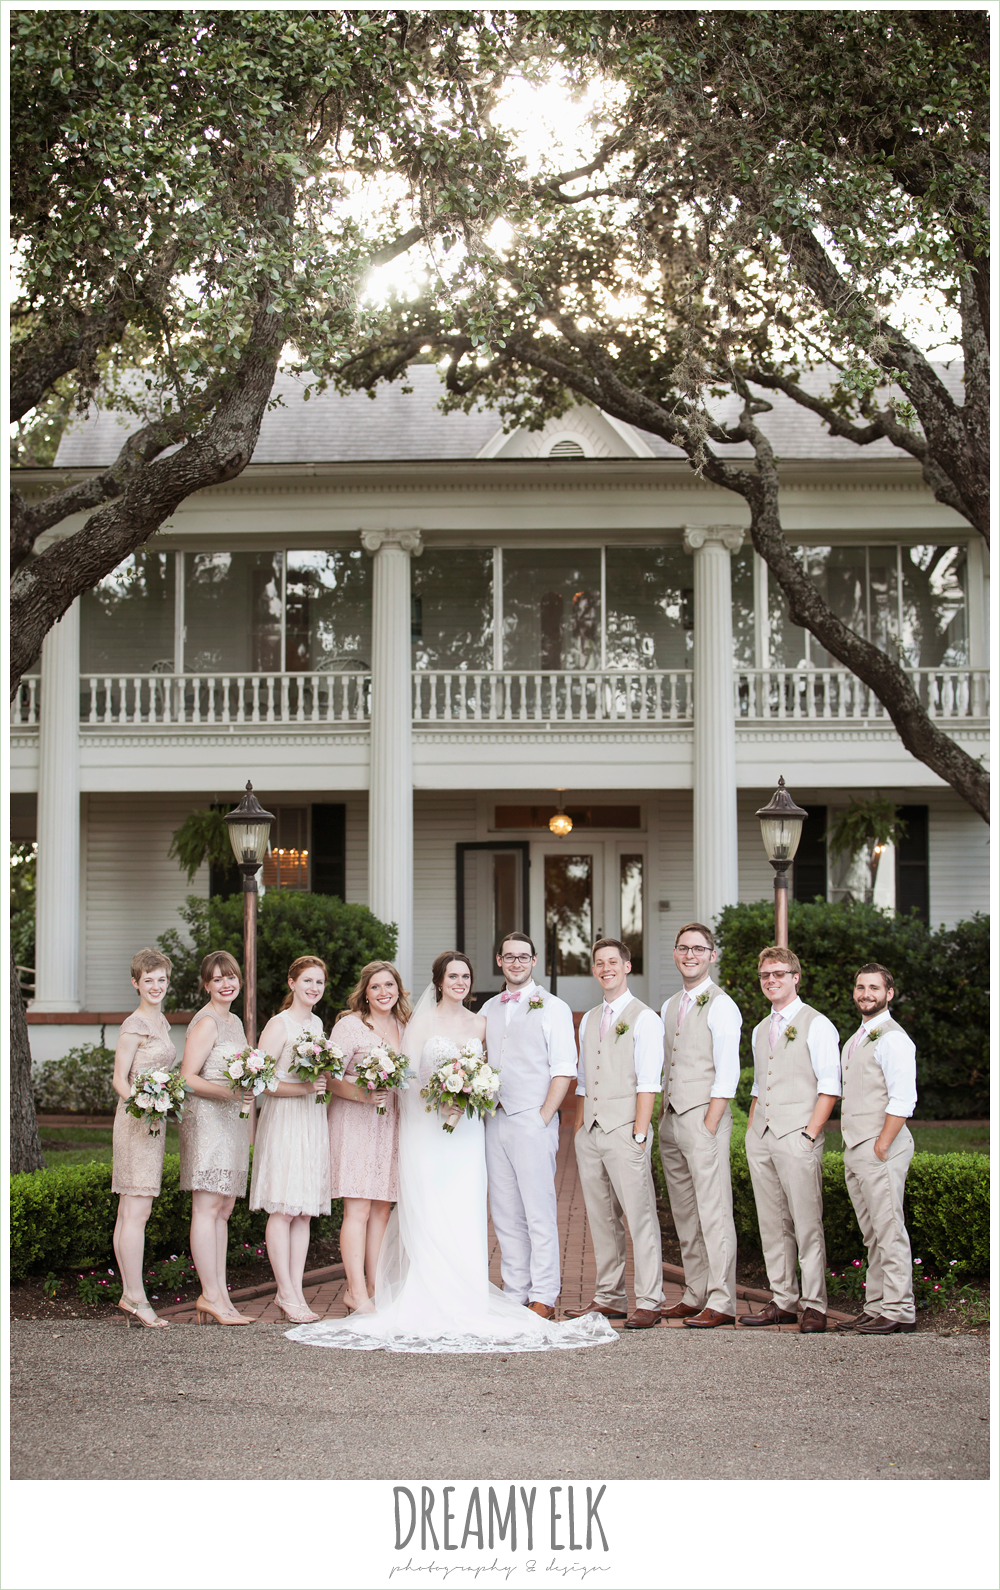 outdoor wedding bridal party, blush tones wedding, the winfield inn, photo {dreamy elk photography and design}